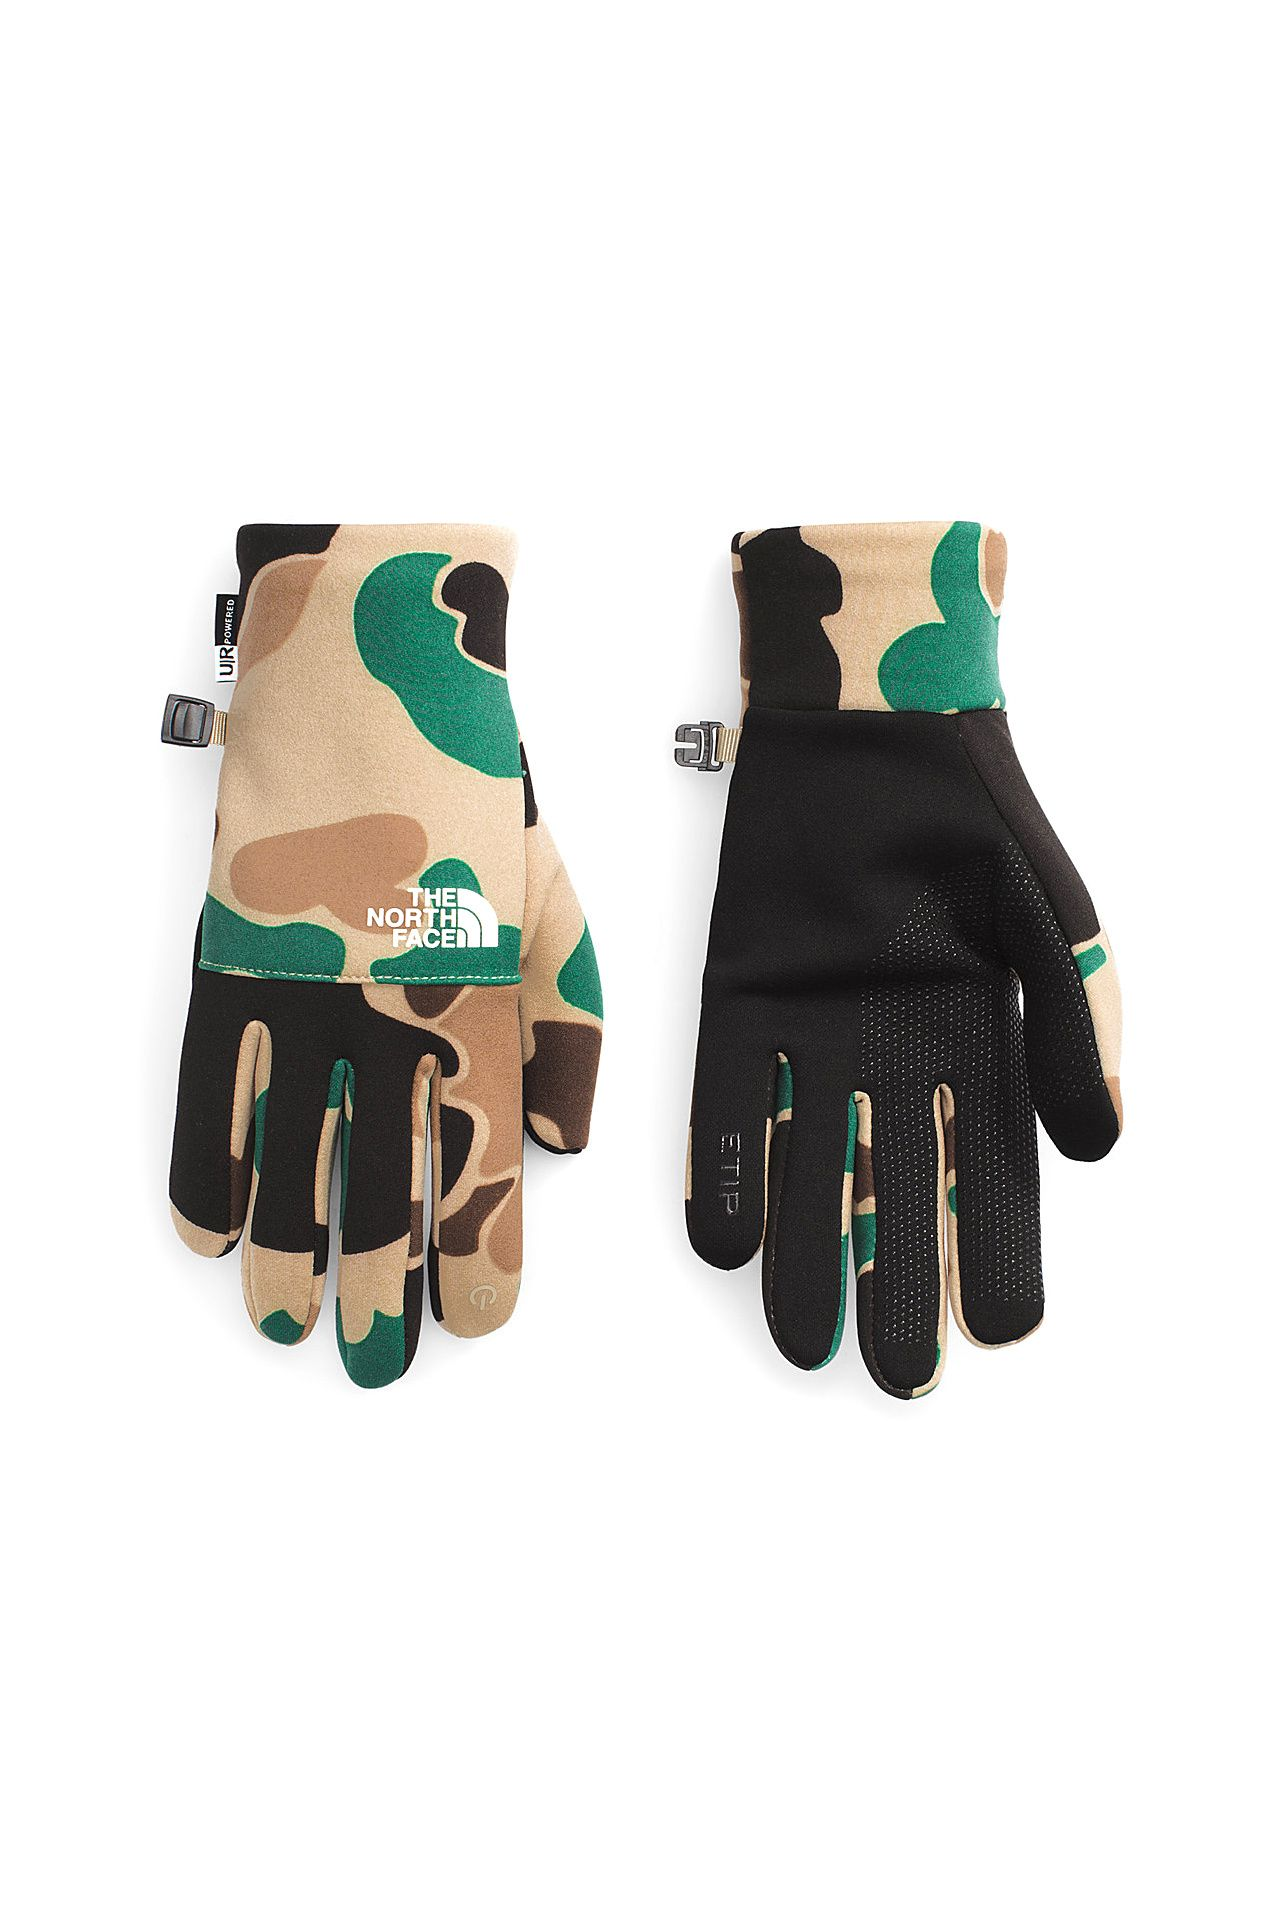 Afbeelding van The North Face Handschoenen Etip Recycled Glove Hwthrnkhkdkcm NF0A4SHAS7U1